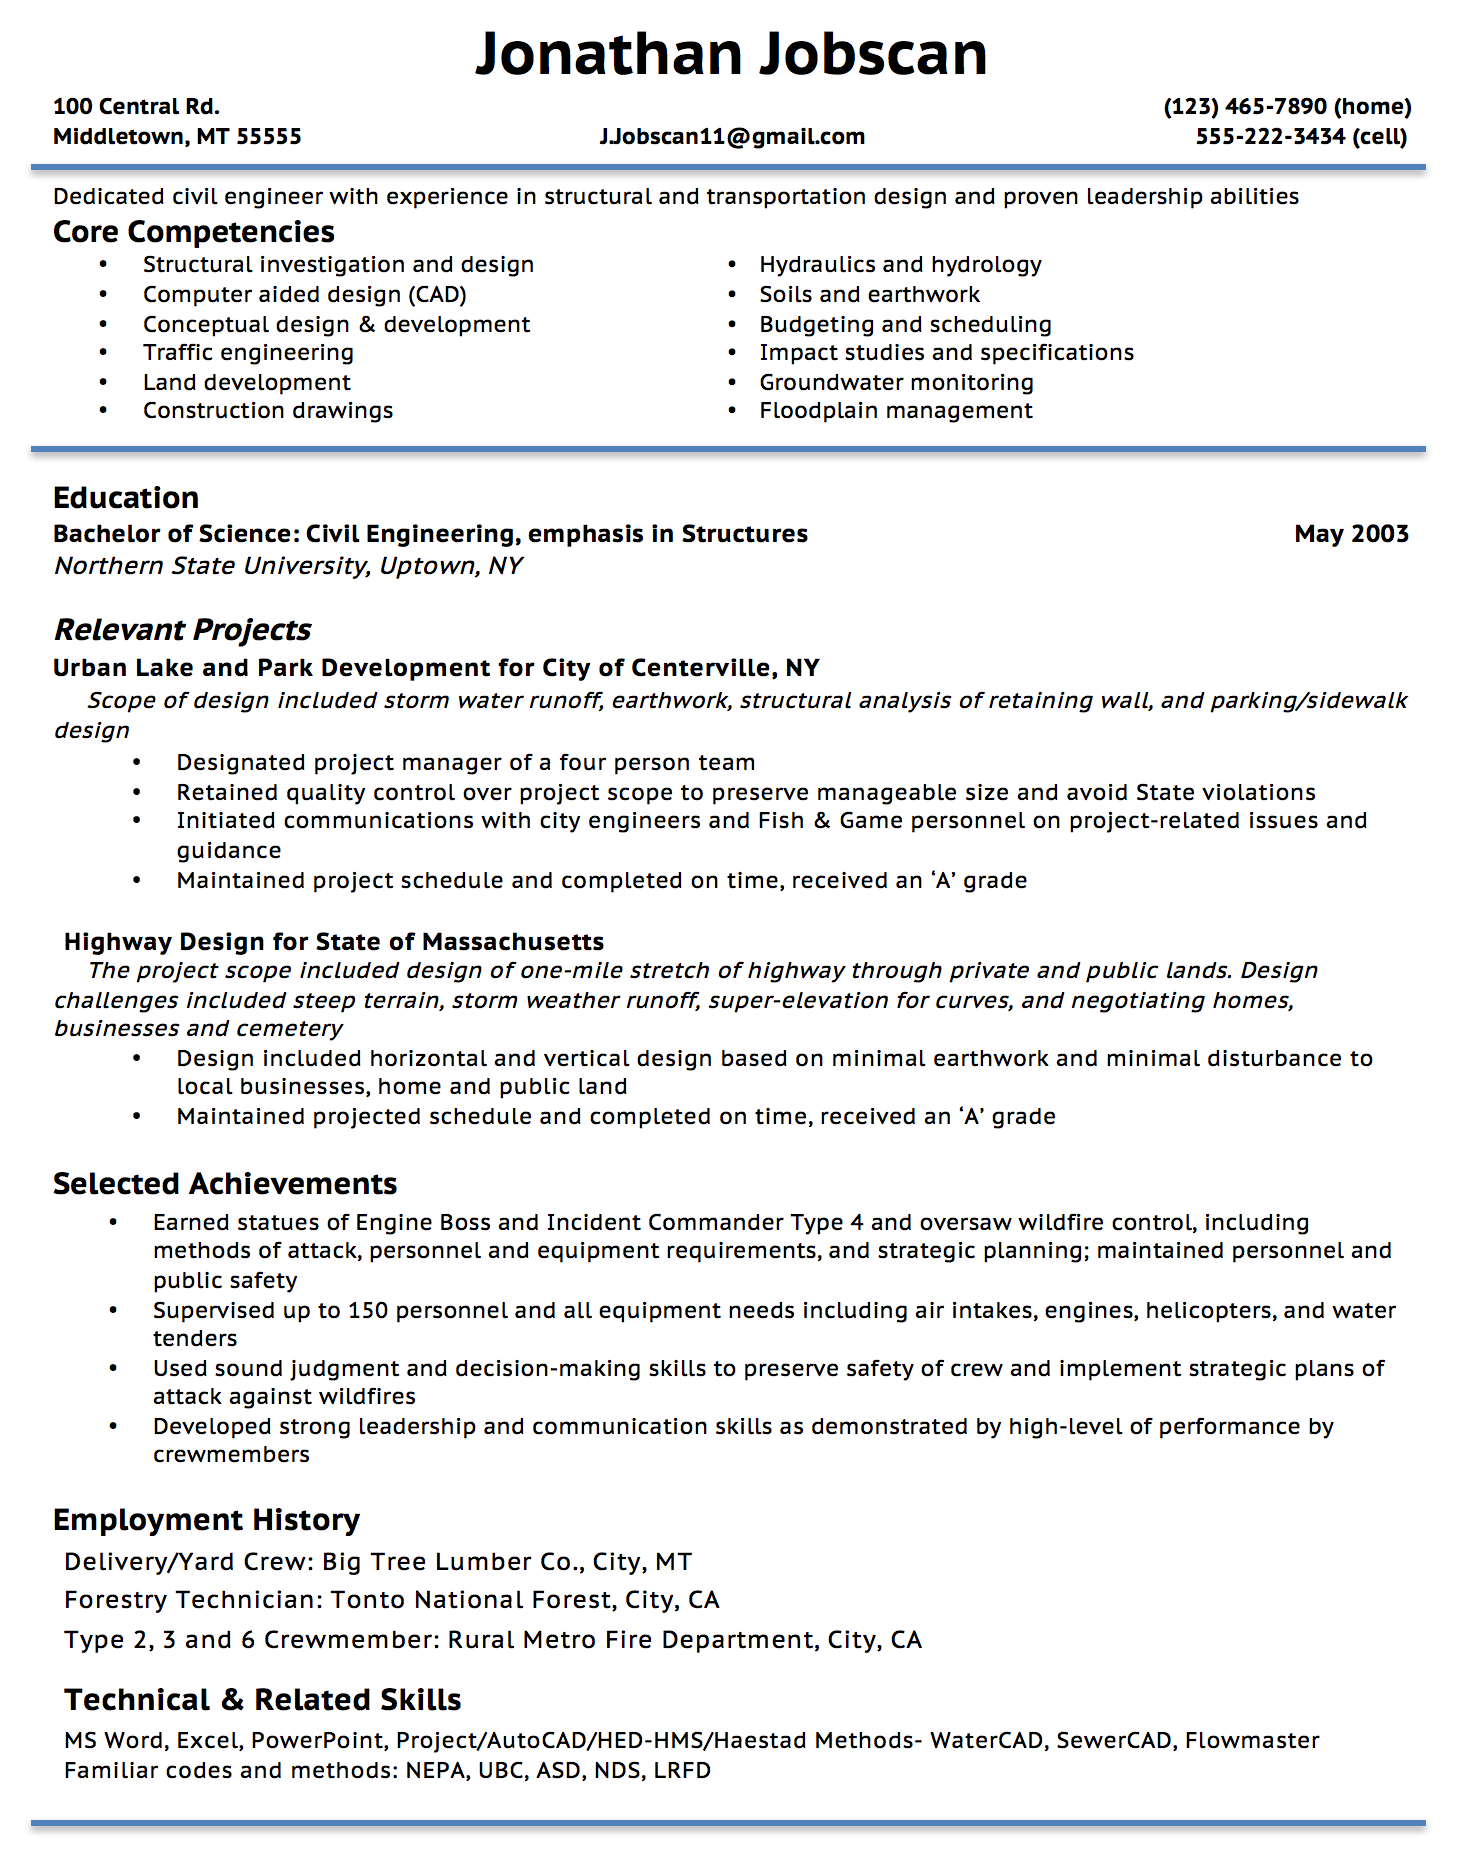 Opposenewapstandardsus  Stunning Resume Writing Guide  Jobscan With Lovely Example Of A Functional Resume Format With Agreeable Digital Resume Also Resume Review Services In Addition Good Examples Of Resumes And Retail Resume Template As Well As What A Good Resume Looks Like Additionally Sample Resume Cover Letters From Jobscanco With Opposenewapstandardsus  Lovely Resume Writing Guide  Jobscan With Agreeable Example Of A Functional Resume Format And Stunning Digital Resume Also Resume Review Services In Addition Good Examples Of Resumes From Jobscanco